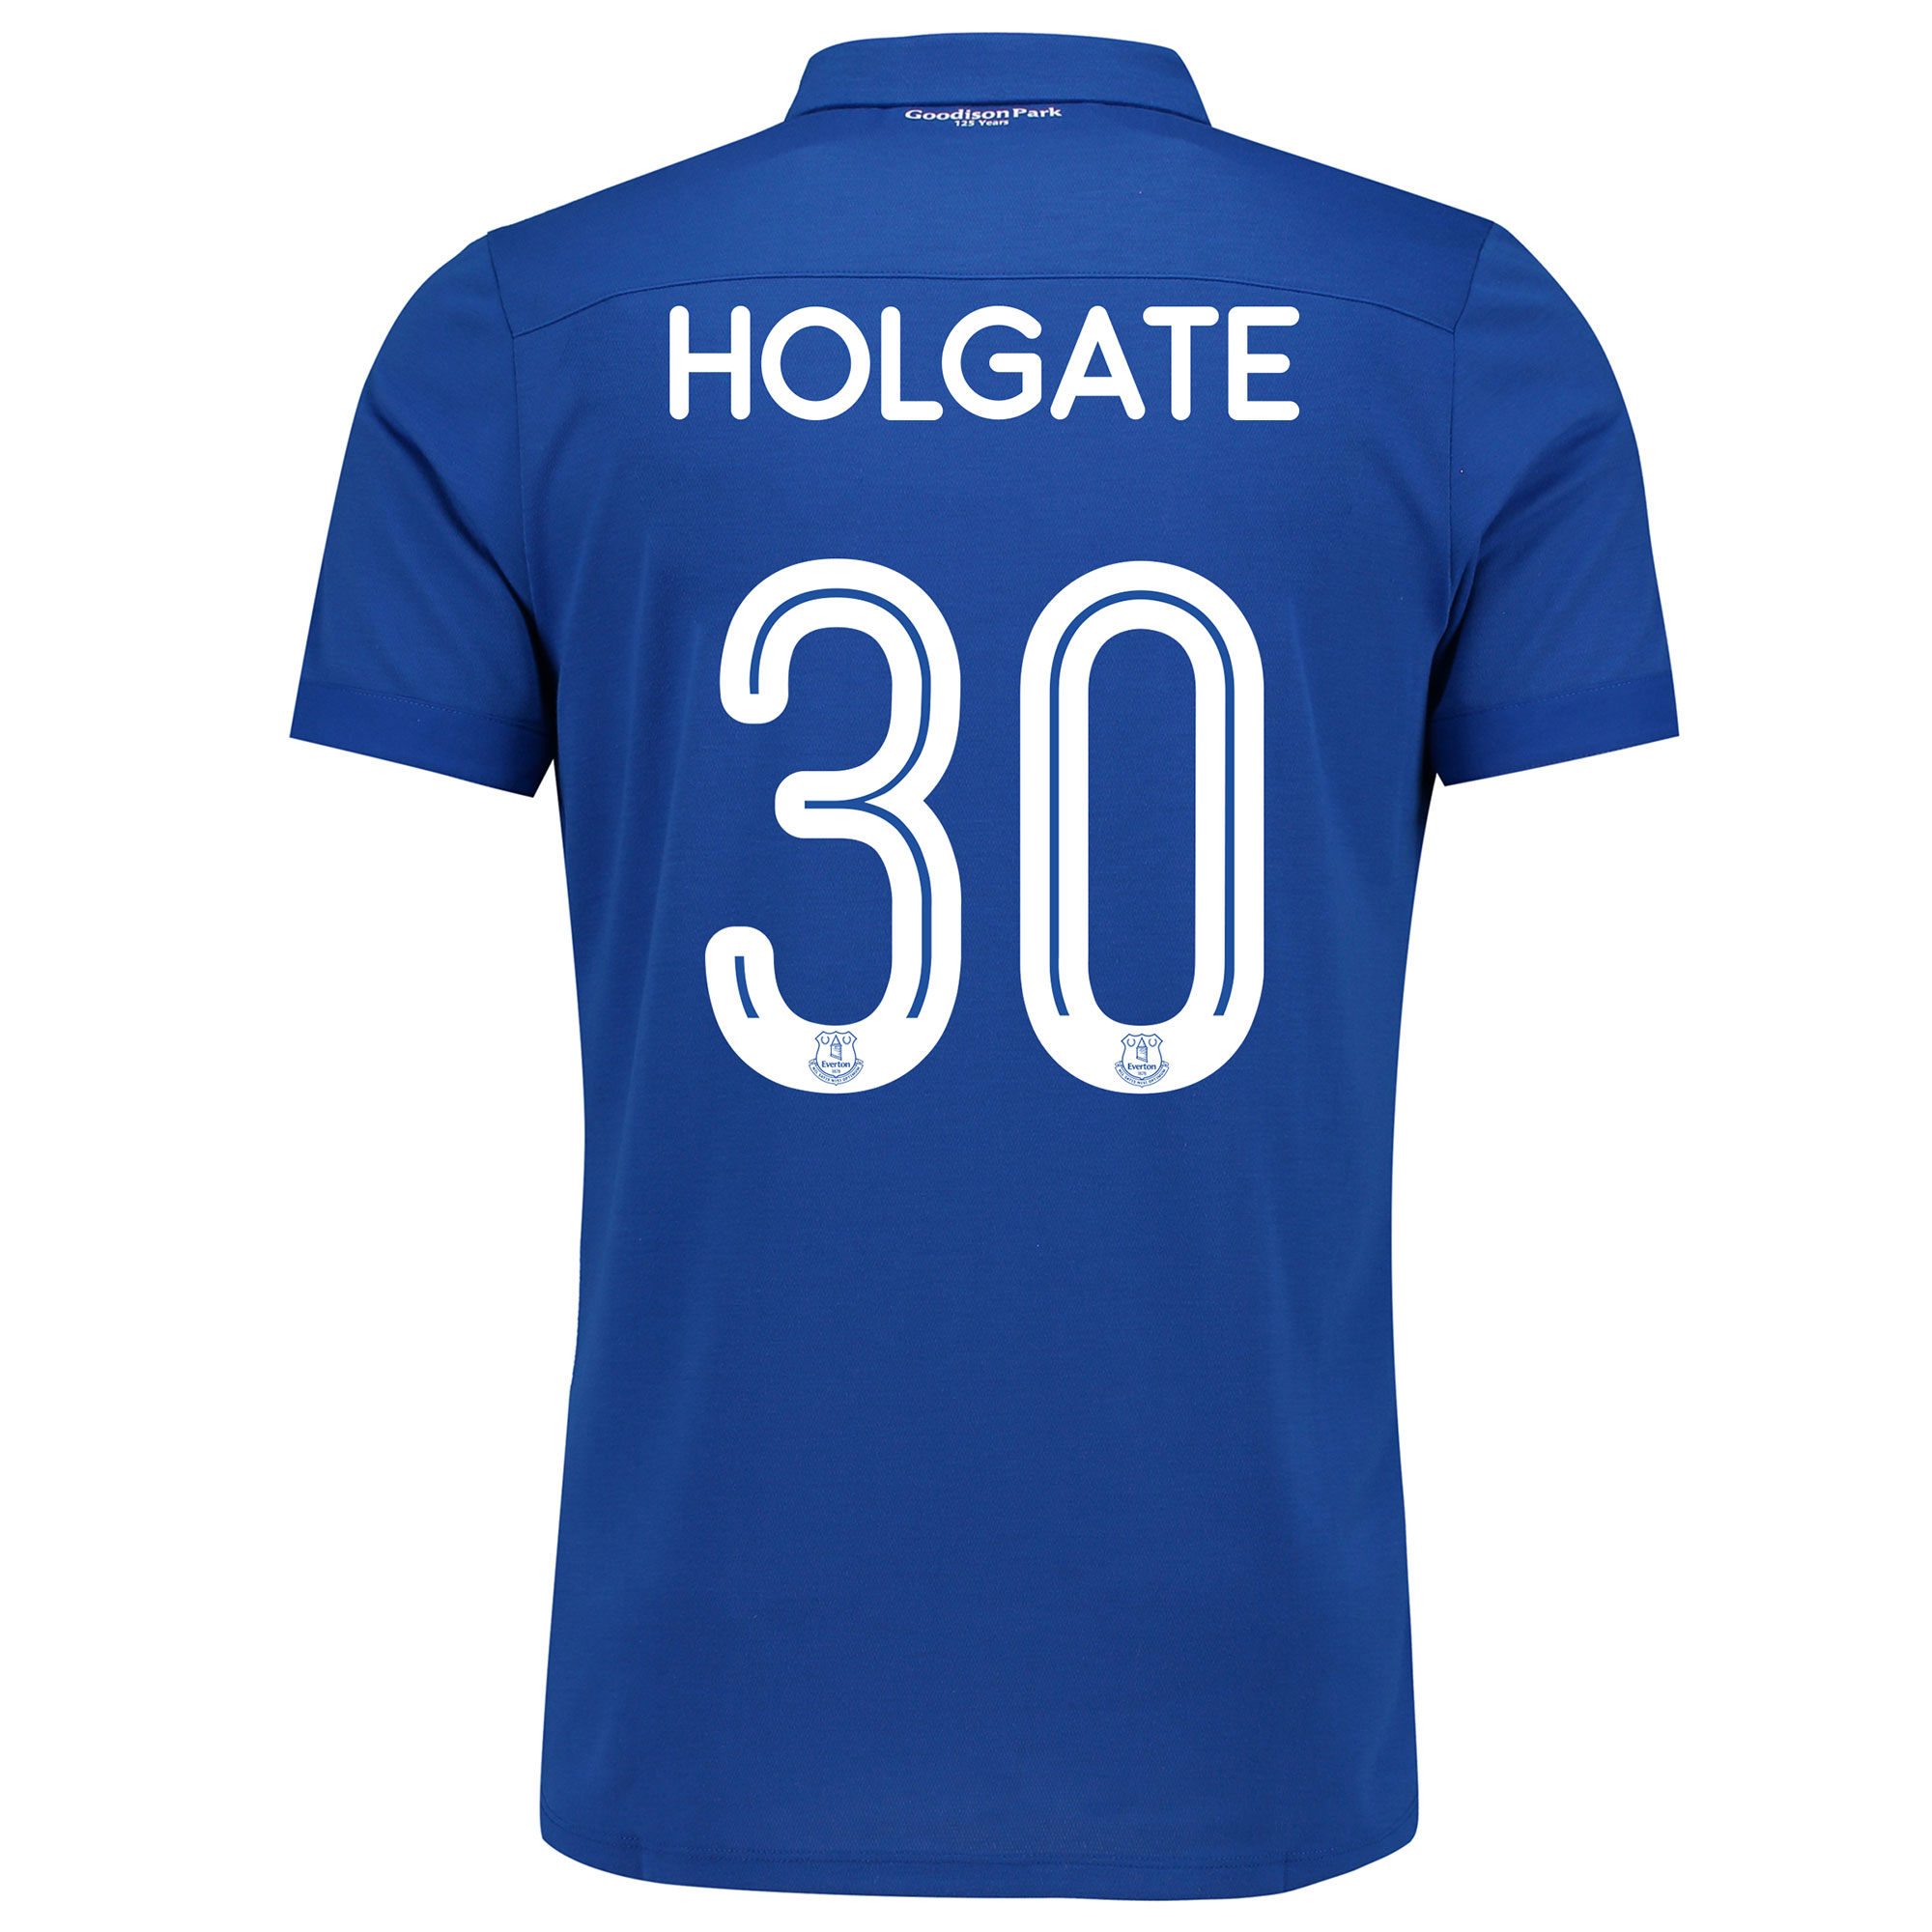 Image of Everton Commemorative Shirt with Holgate 30 printing